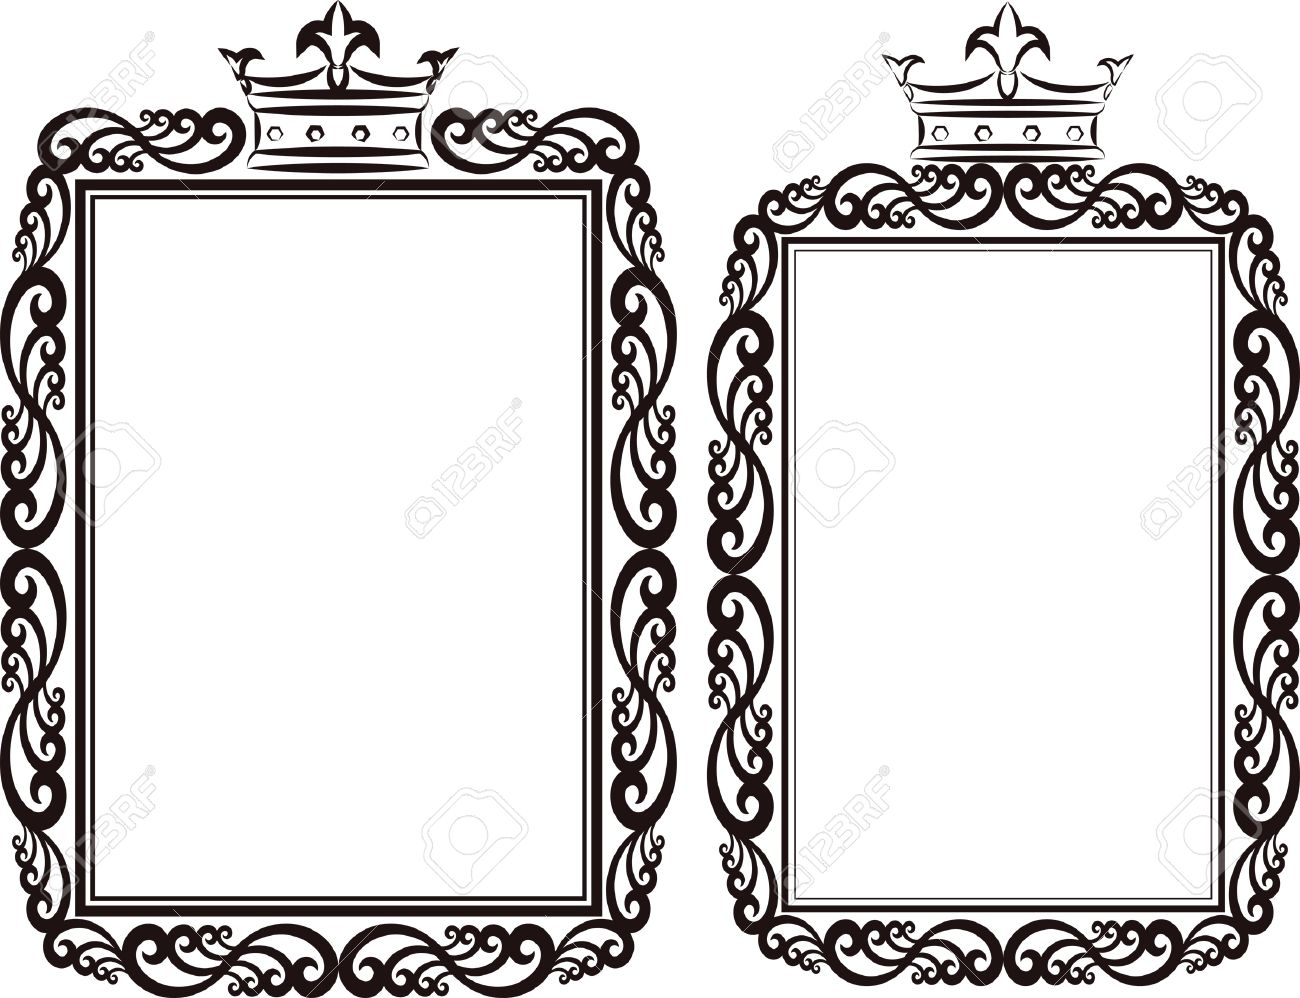 royal border clip art illustration royalty free cliparts vectors rh 123rf com clip art borders frames clip art borders frames